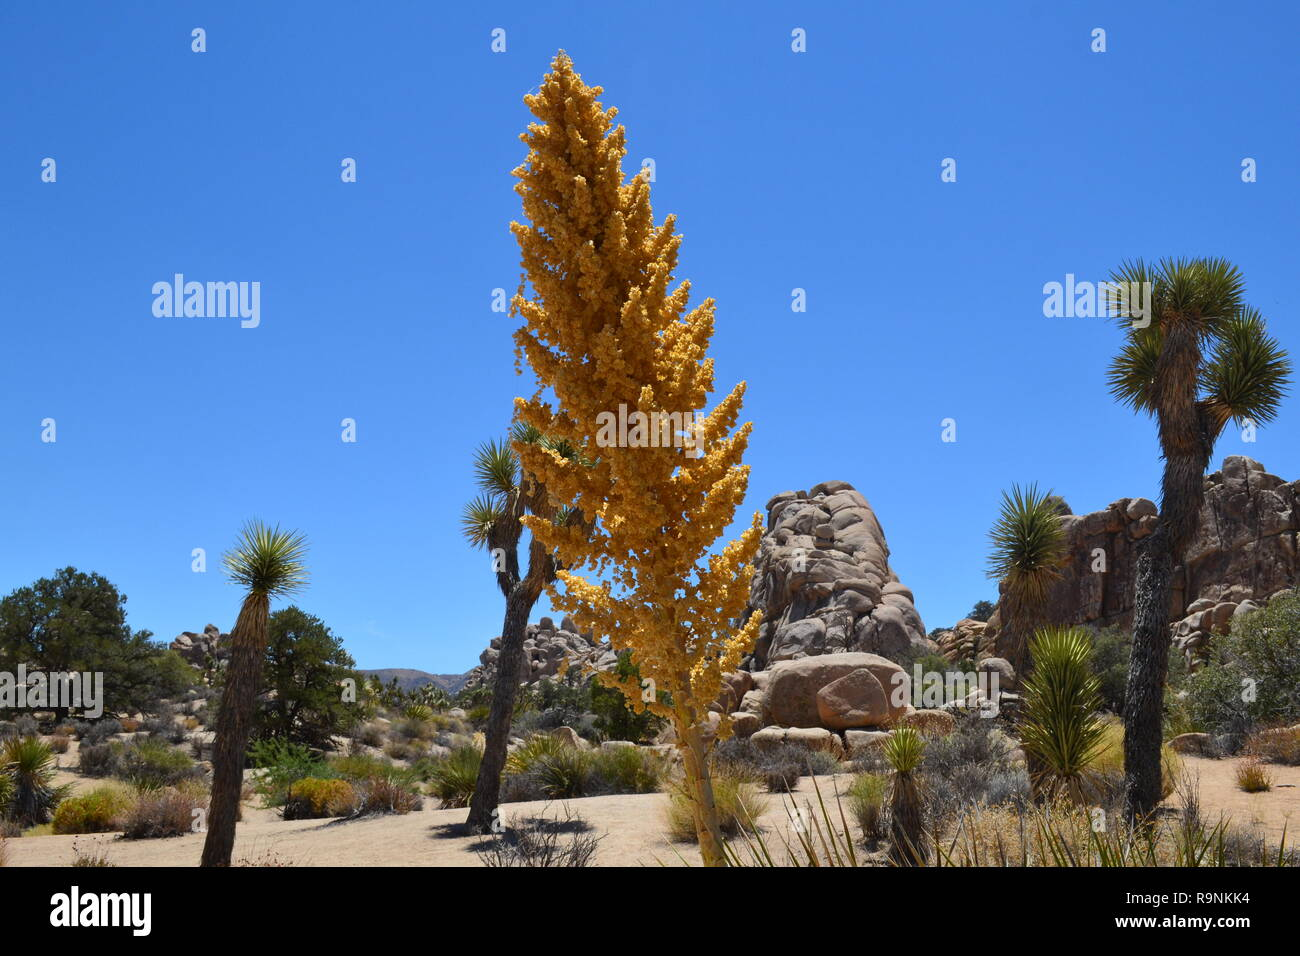 A tall, straight yucca growing in Joshua Tree National Park, California, USA. In the Hidden Valley, Mojave Desert - Stock Image